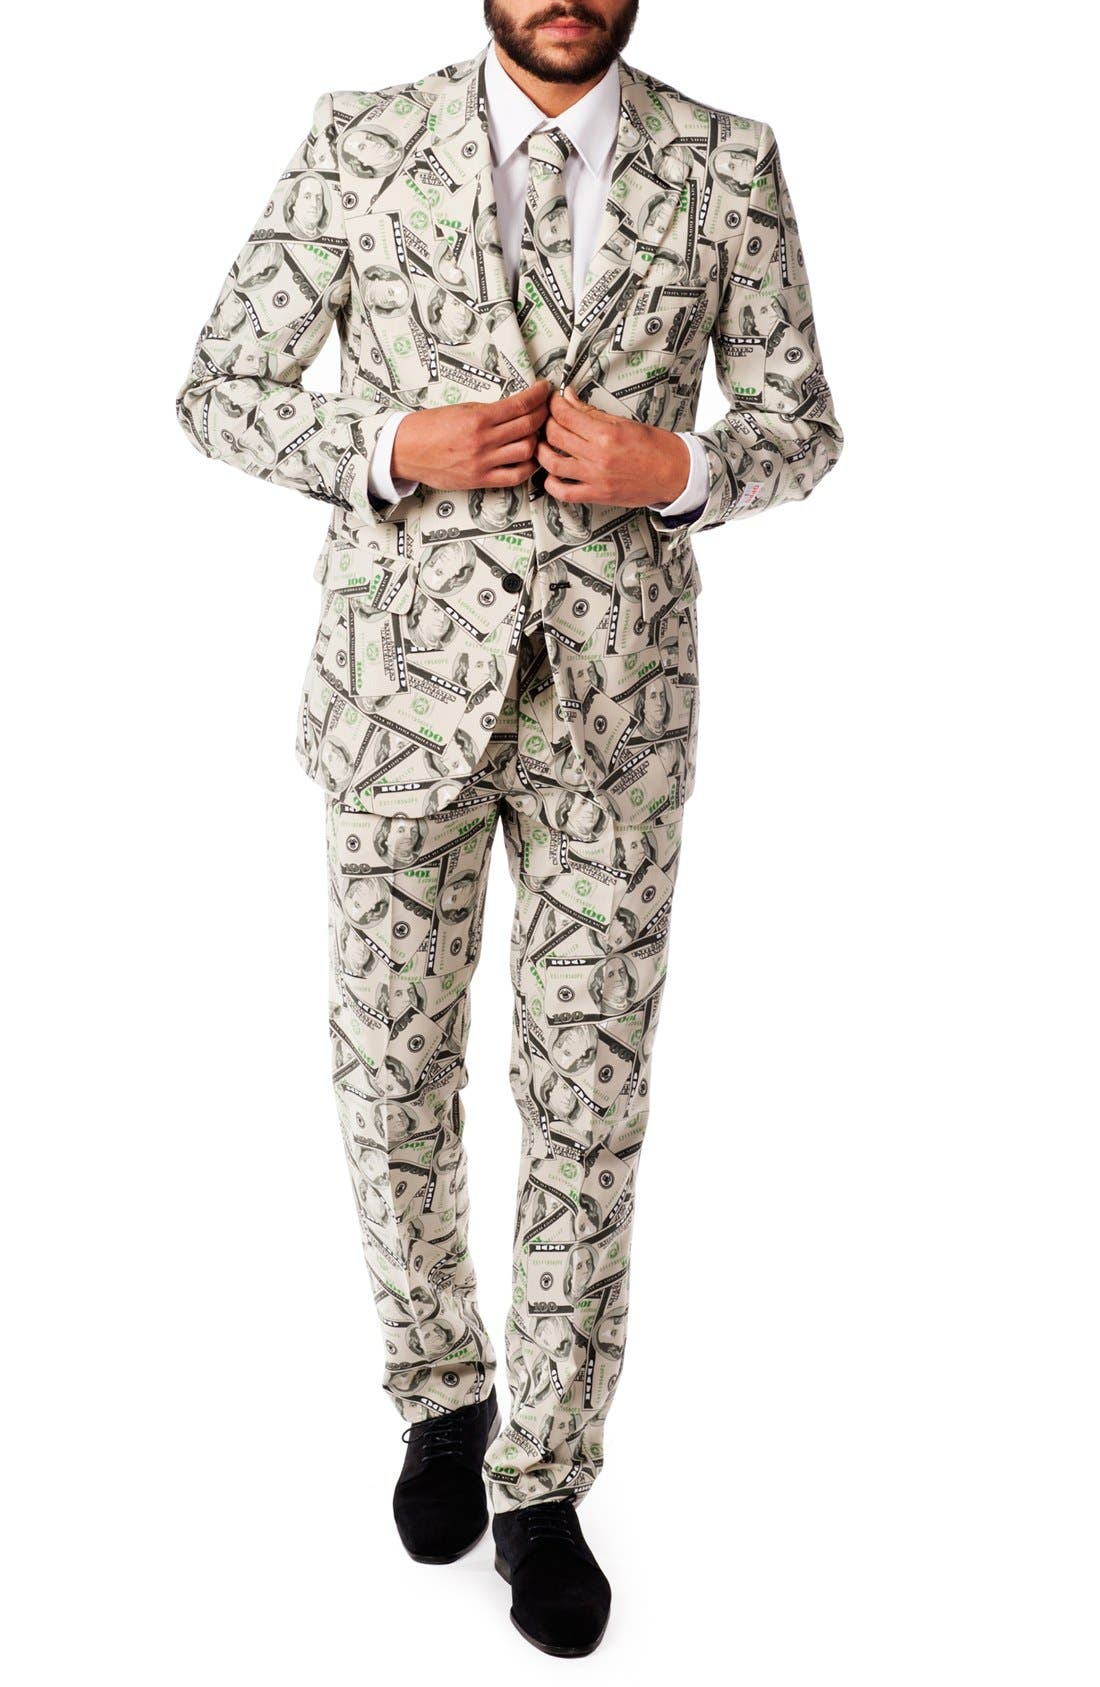 Alternate Image 1 Selected - OppoSuits 'Cashanova' Trim Fit Suit with Tie